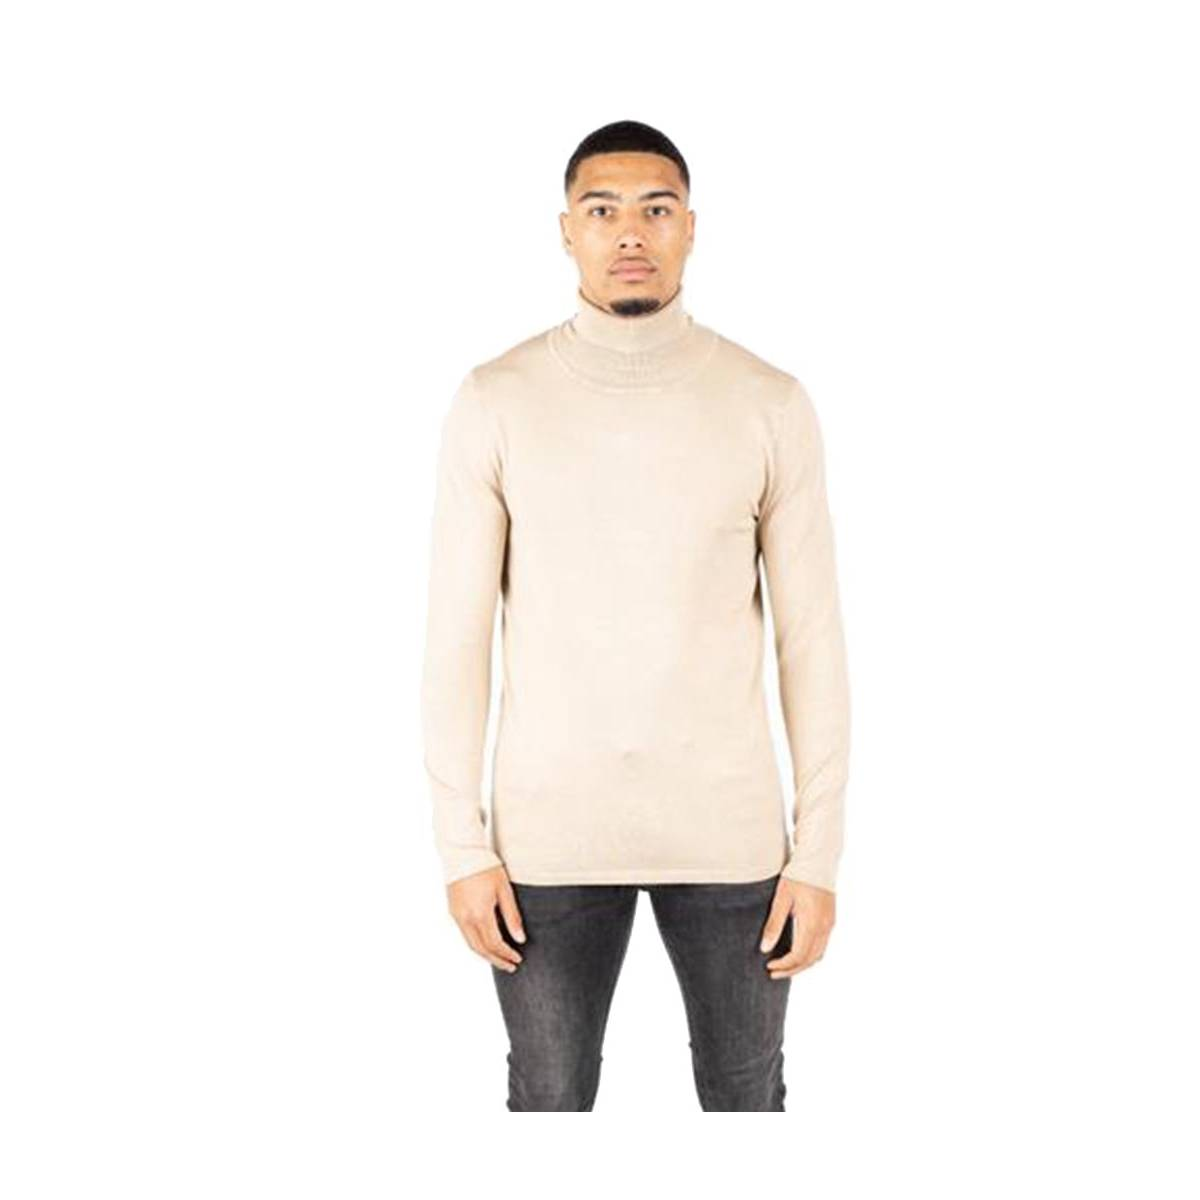 Quotrell OSLO TURTLEKNIT KW00001 Beige